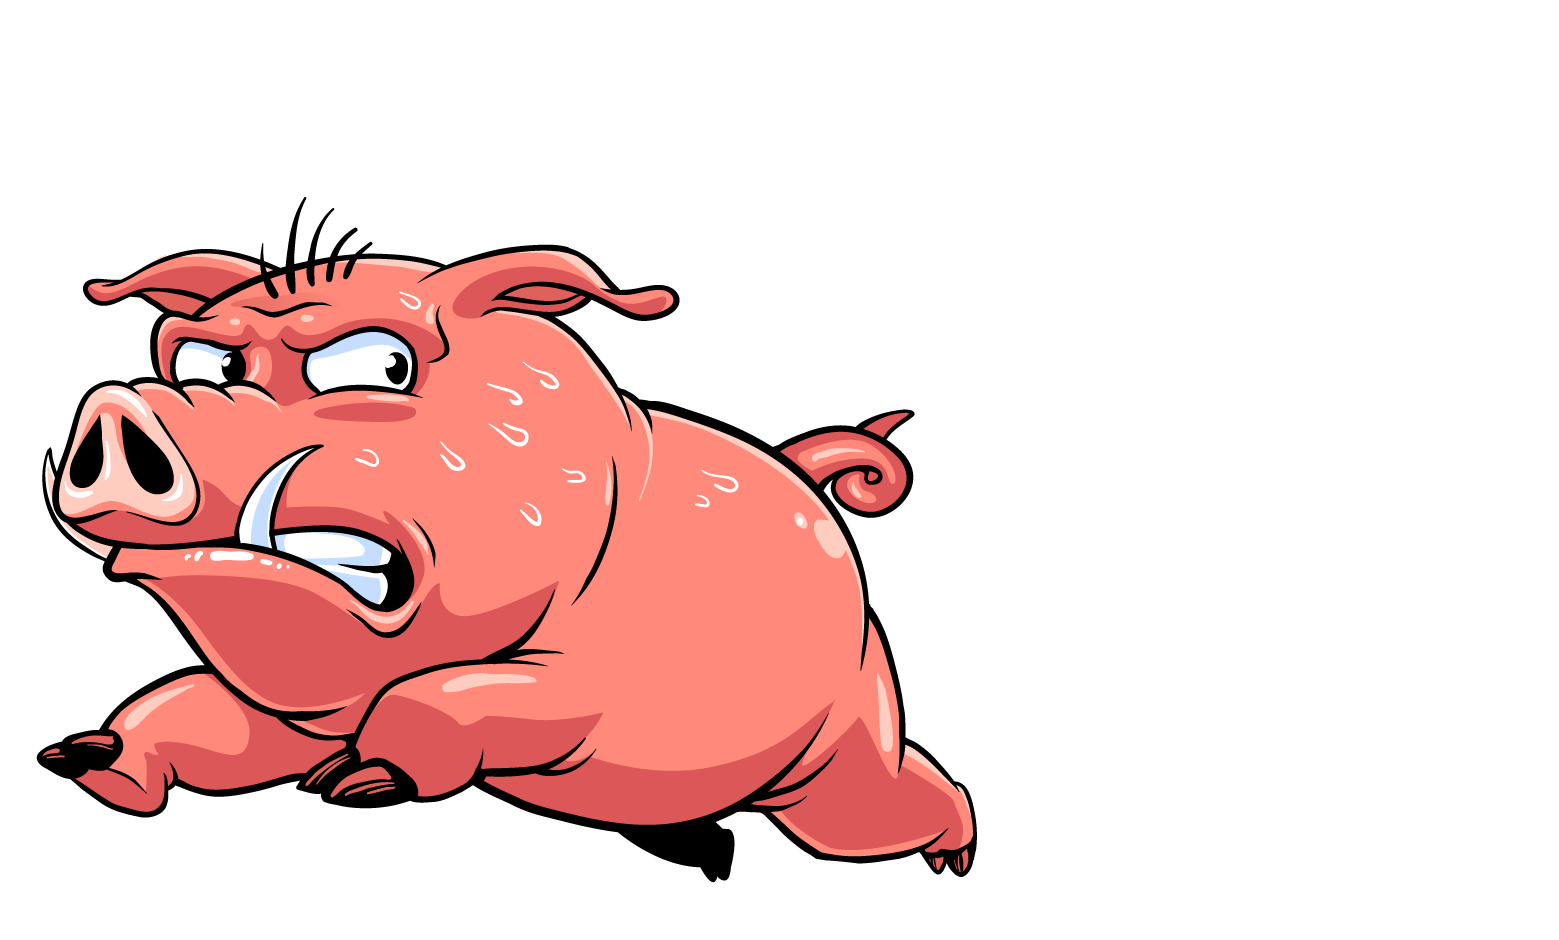 Bacon clipart character. Rendy the run logo